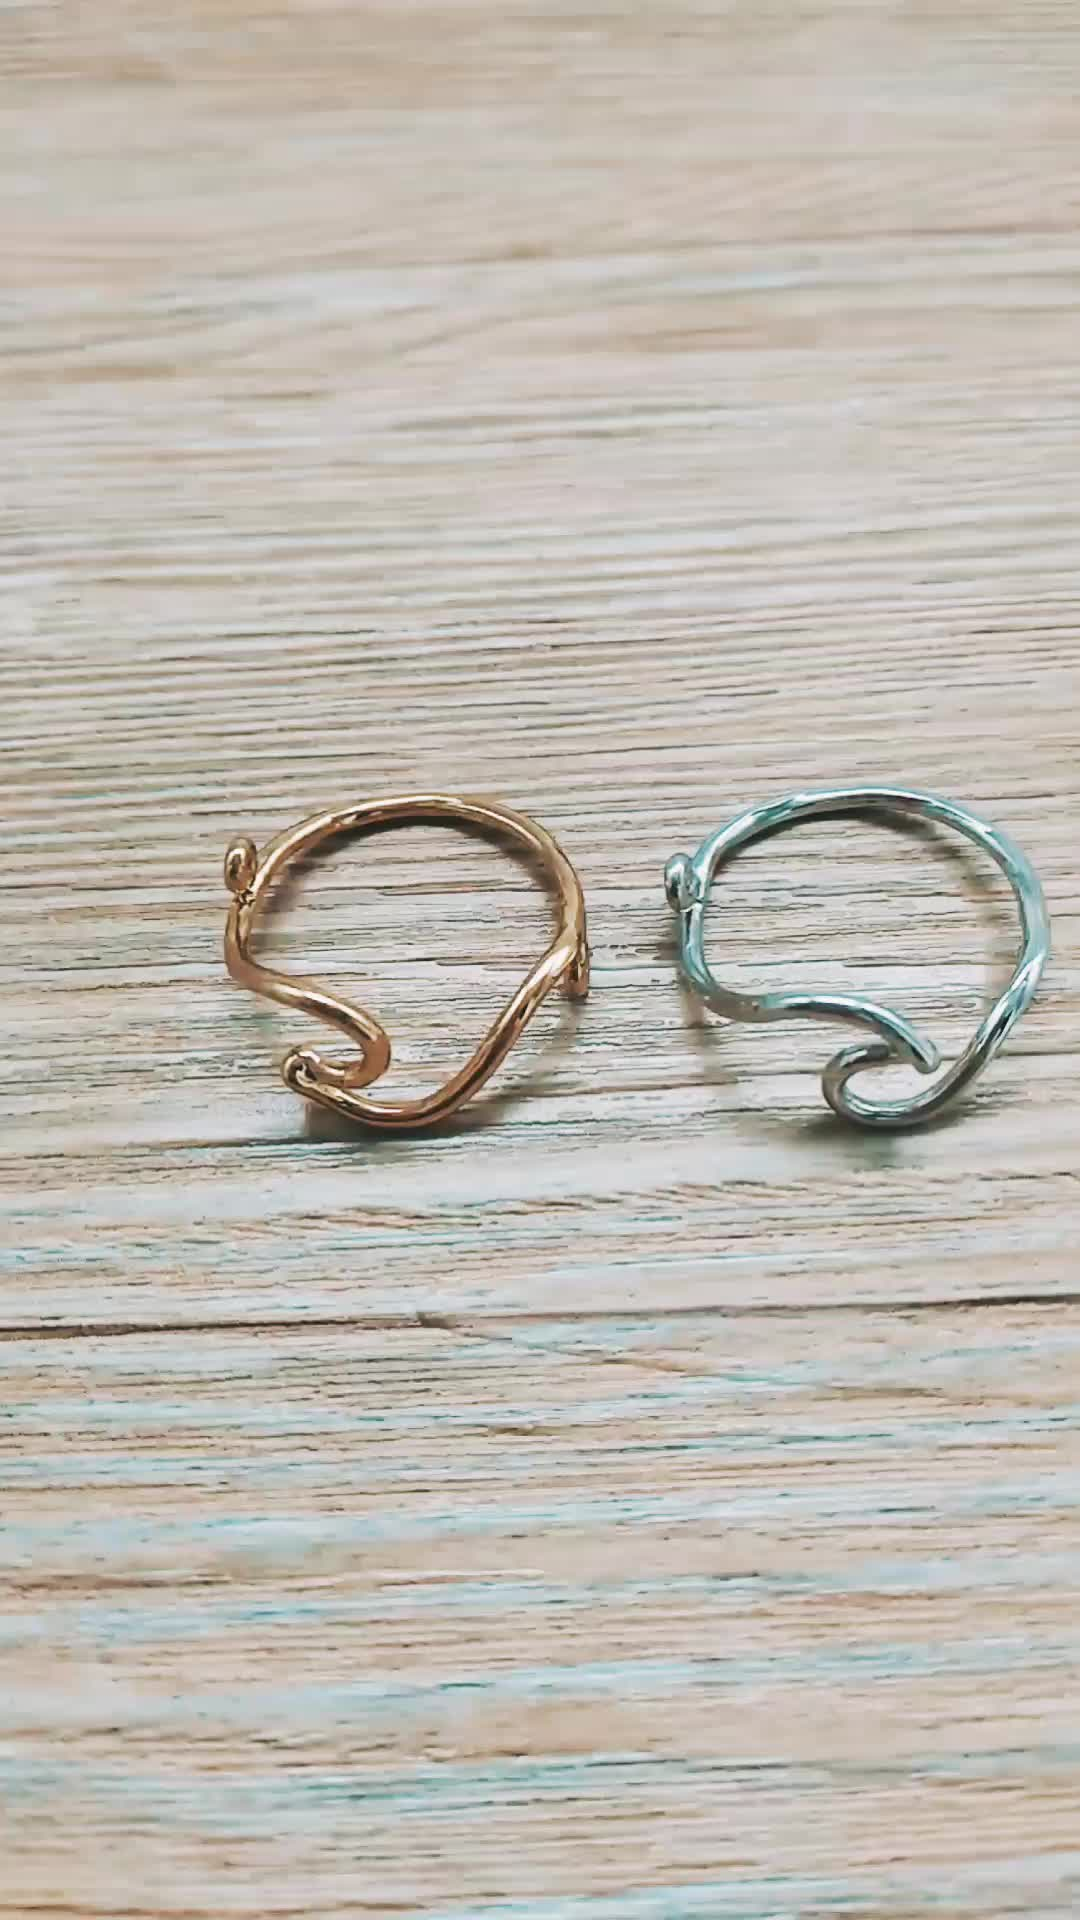 Zooying gold filled surfing ocean beach jewelry copper brass silver  Wave Ring